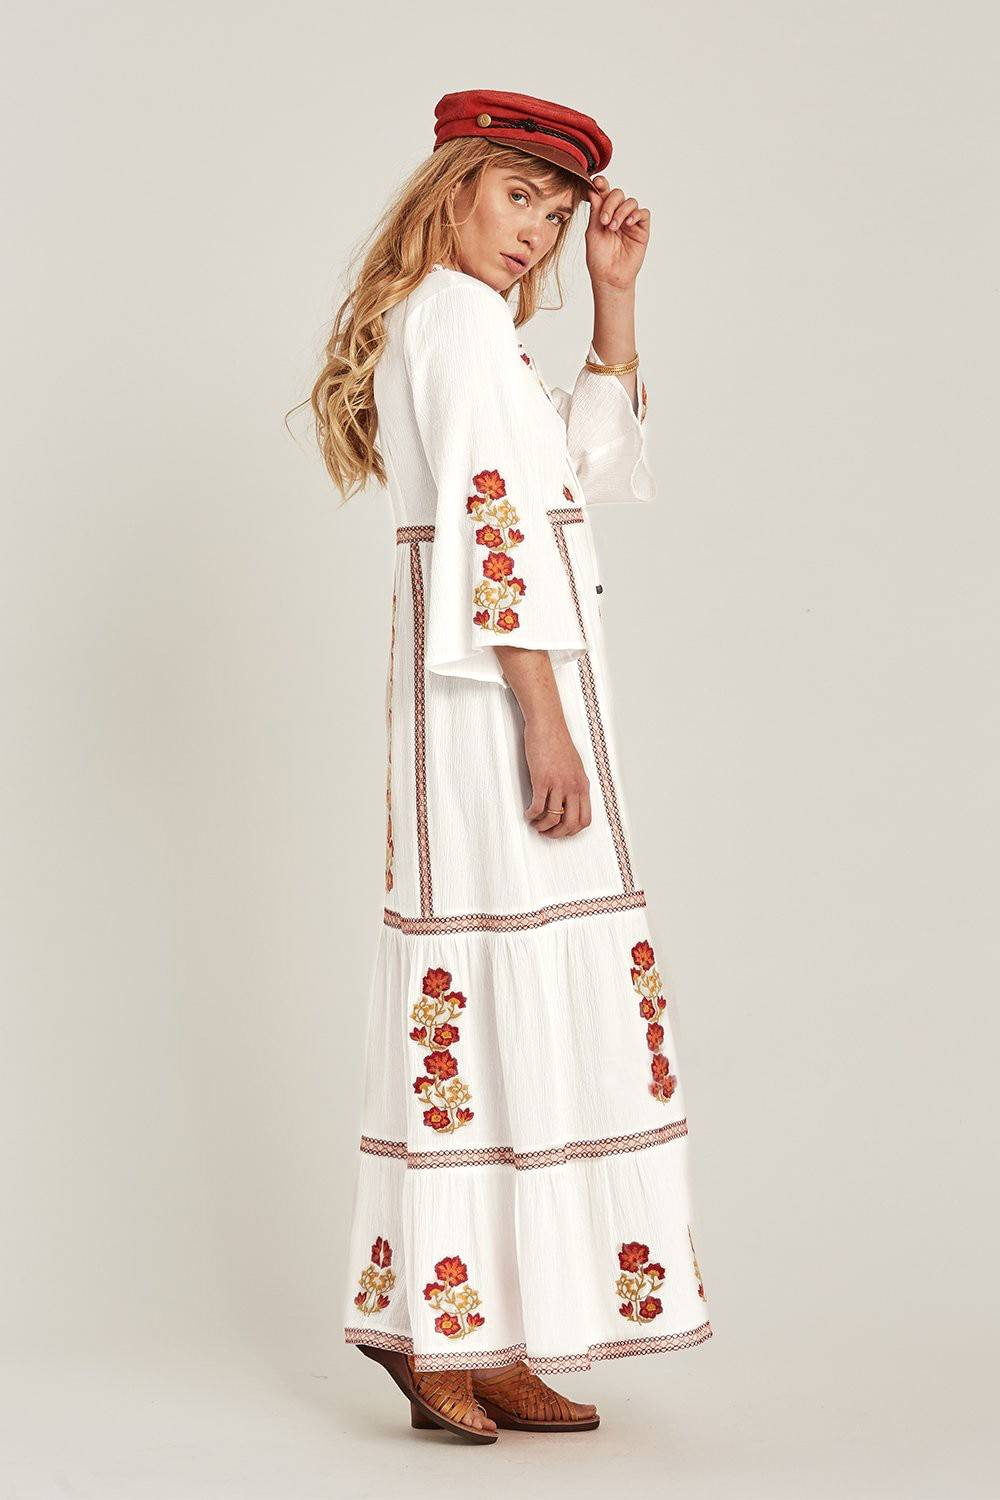 Jastie Bohemian Holiday Women Dress Boho Floral Embroidered Dresses V-Neck Long Sleeve Autumn Maxi Dresses for Women Vestidos